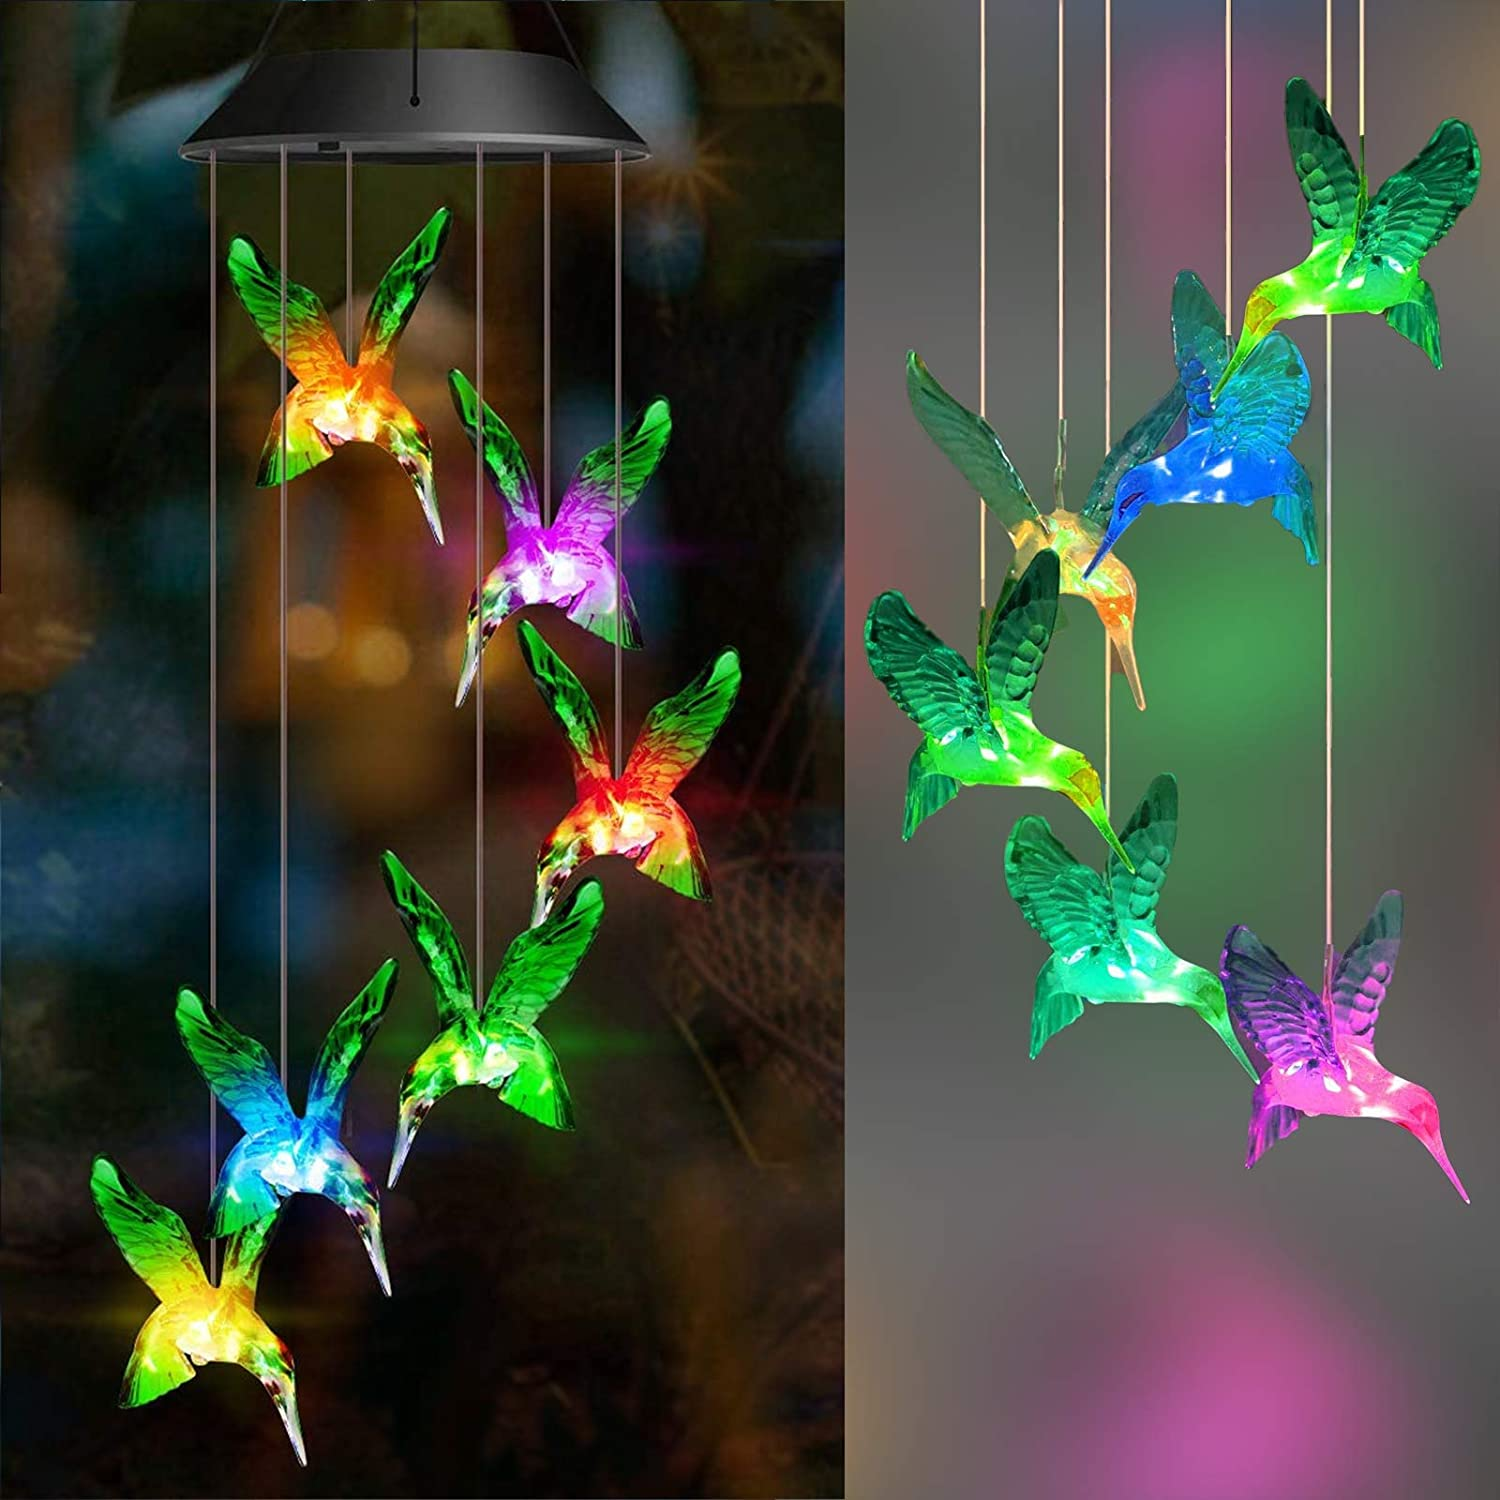 OurLeeme Hummingbird Wind Chimes Led Color Changing Solar Wind Chime Light Wind Chimes Outdoor Solar Light Solar Mobile Wind Chime for Home Party Yard Garden Night Decoration